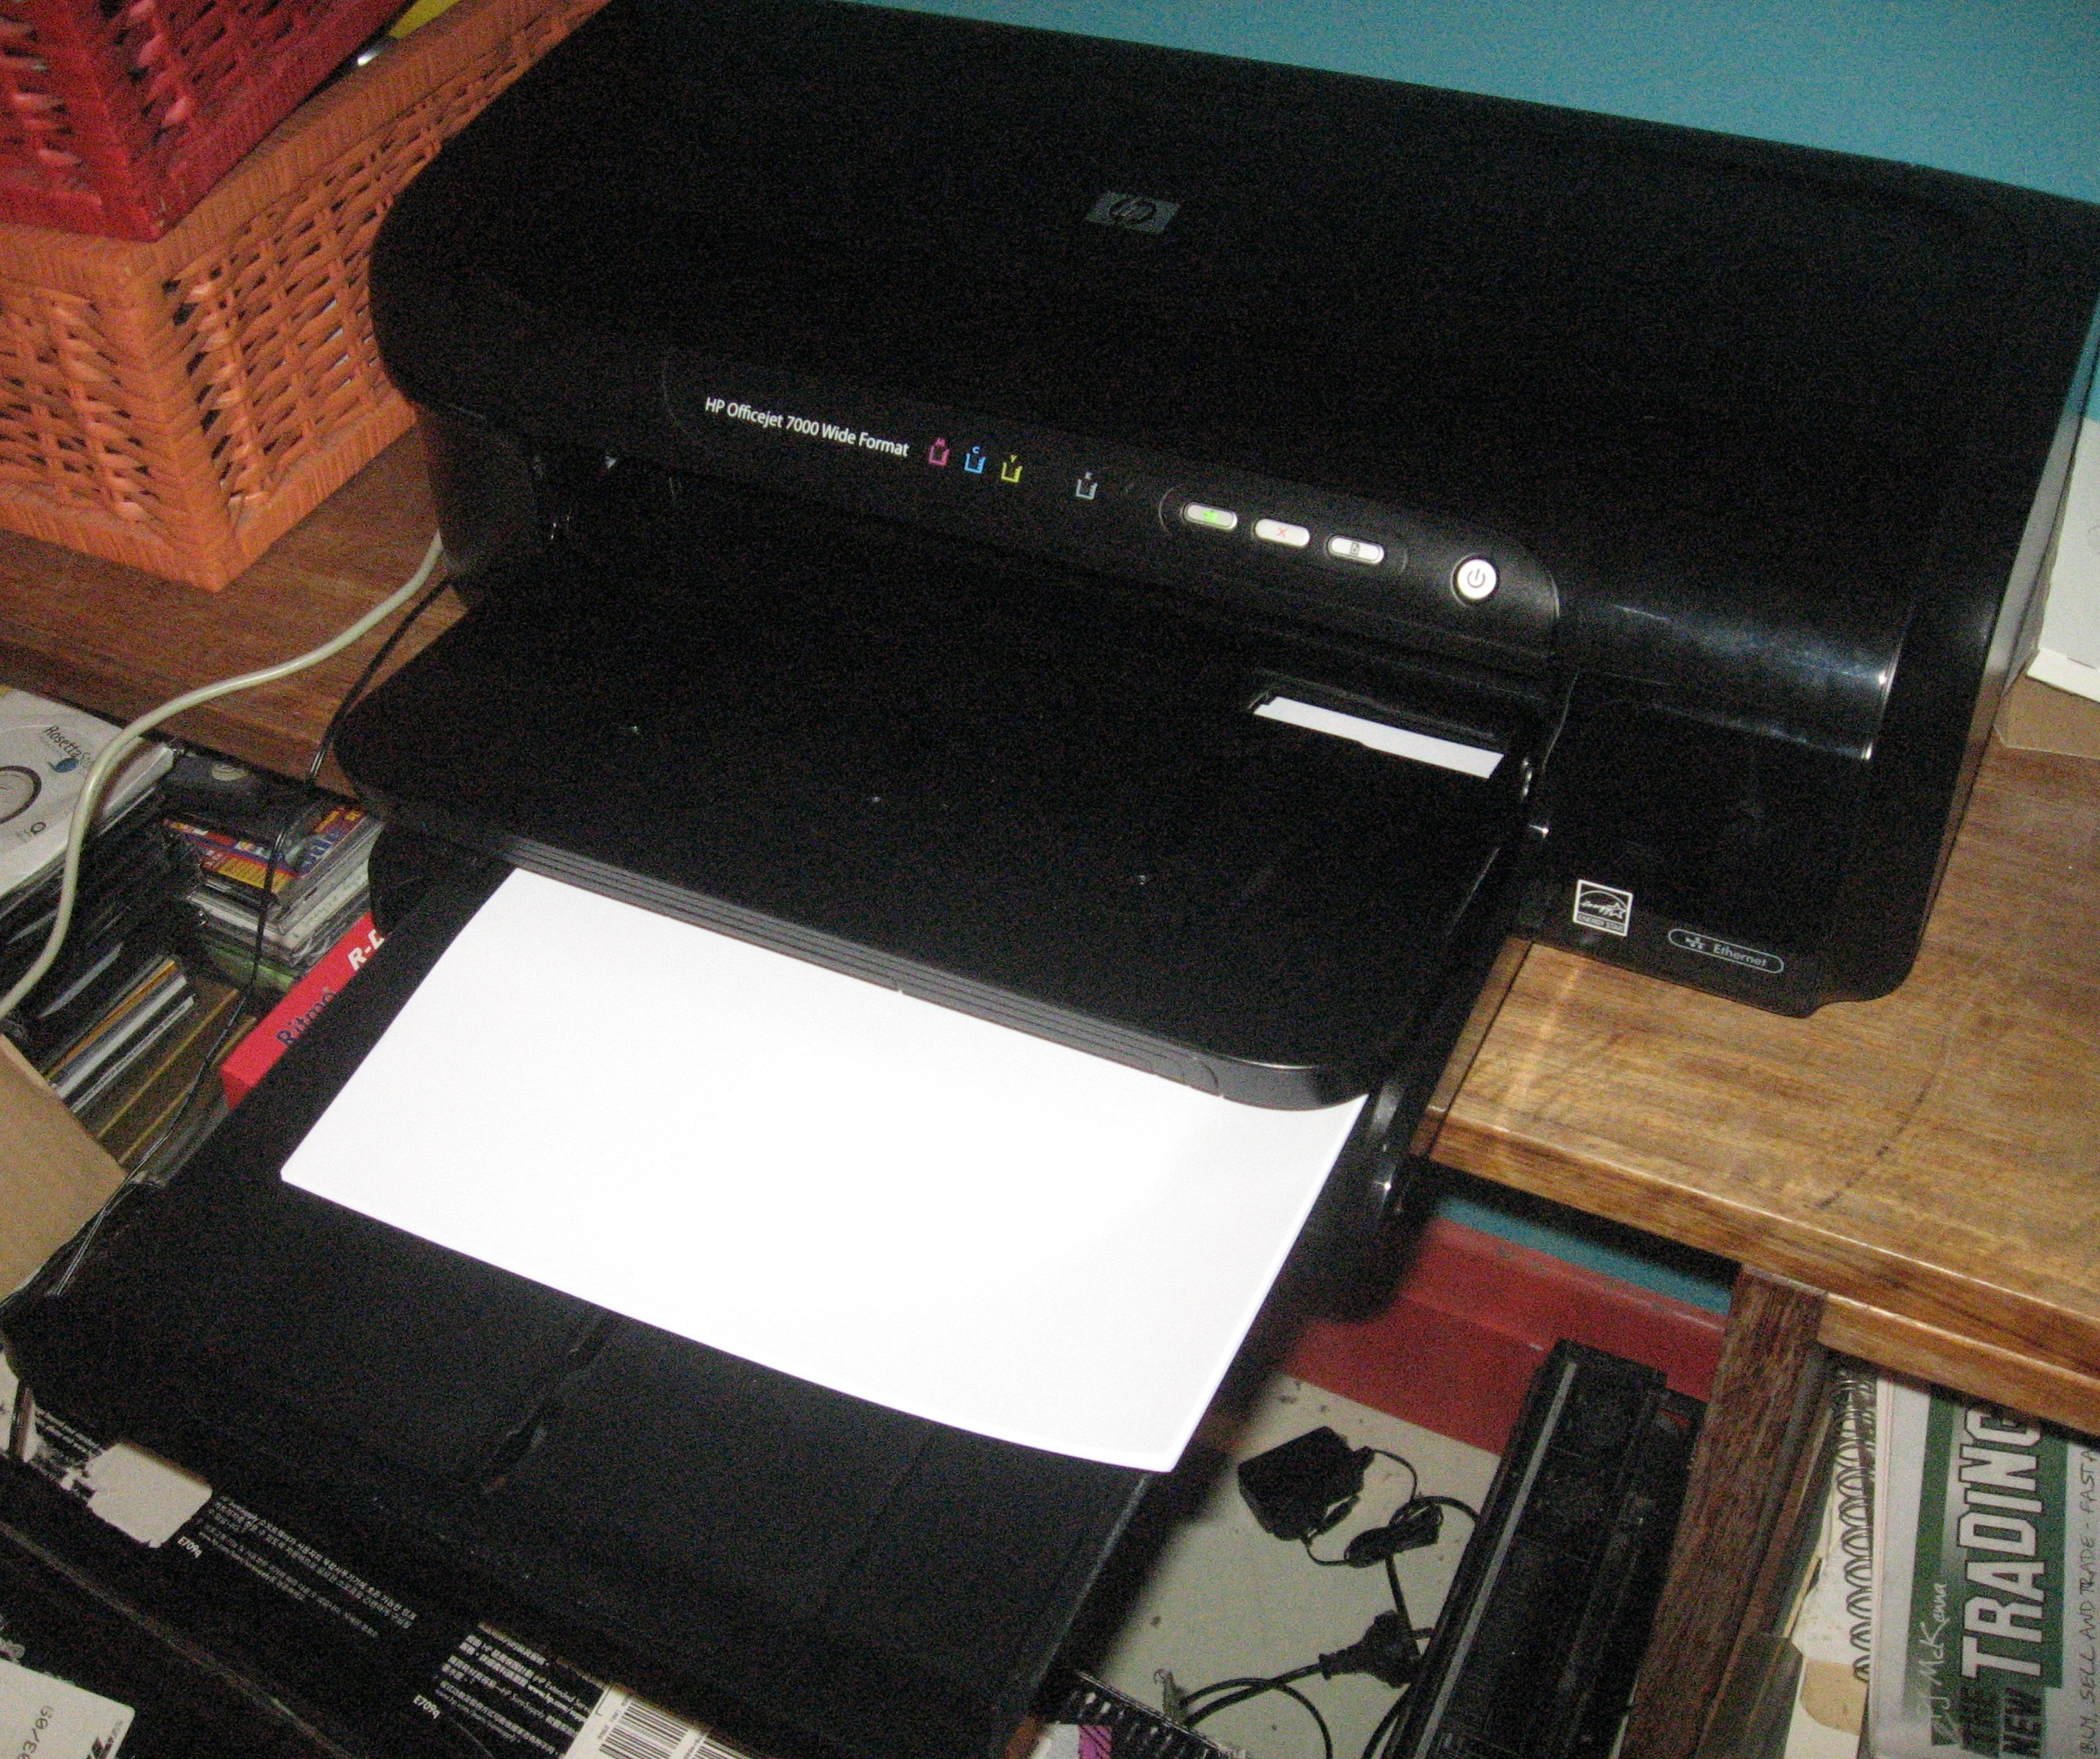 HP OfficeJet 7000 wide-format printer